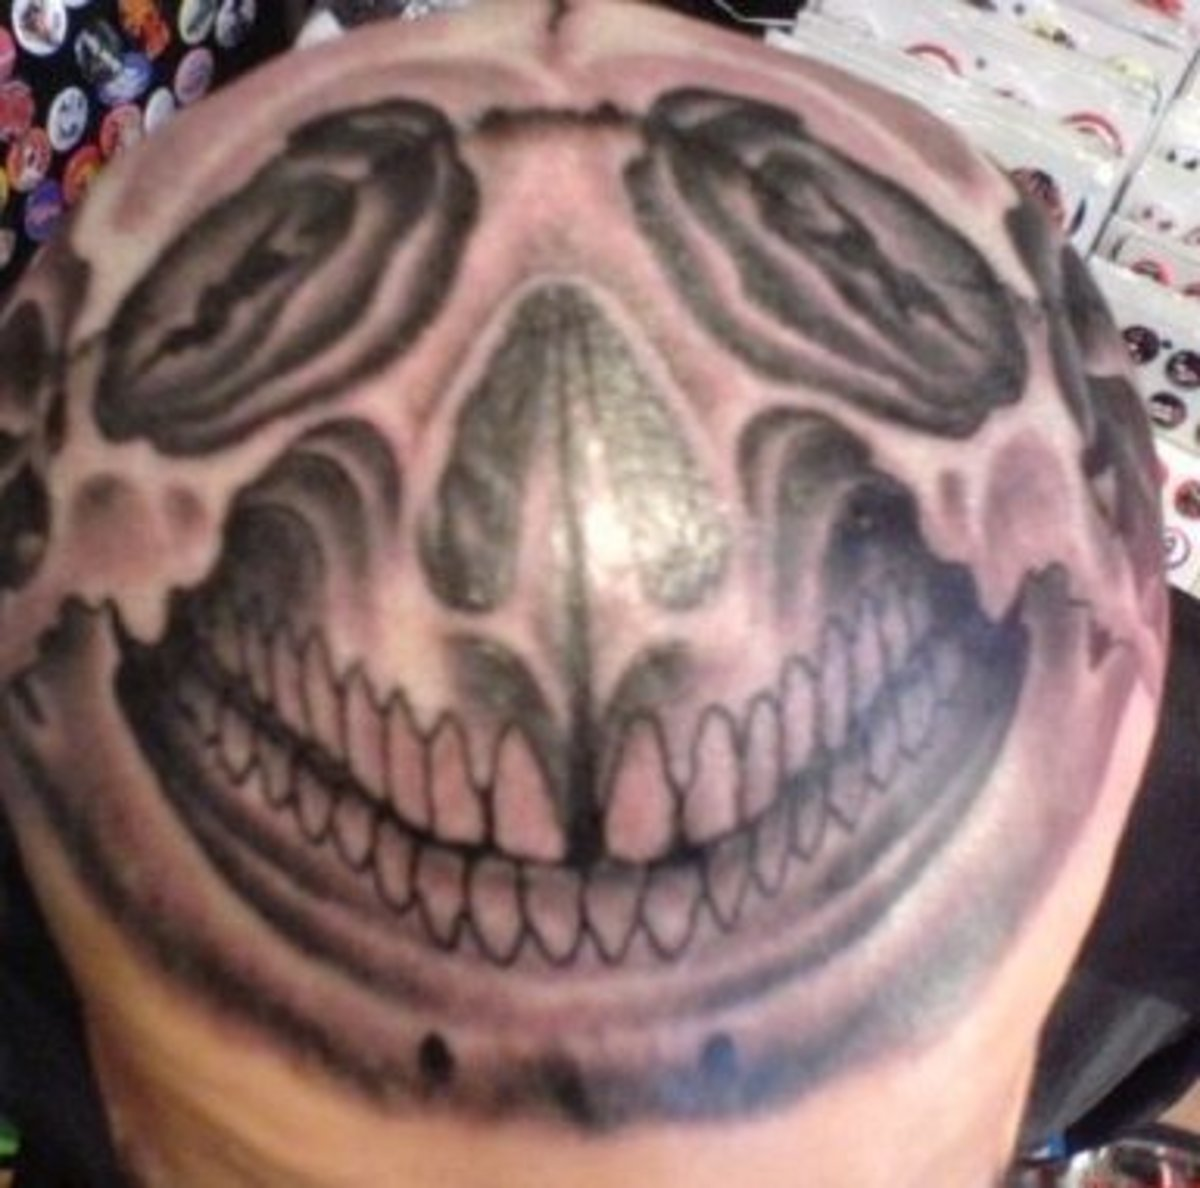 a face tattooed on a person's head